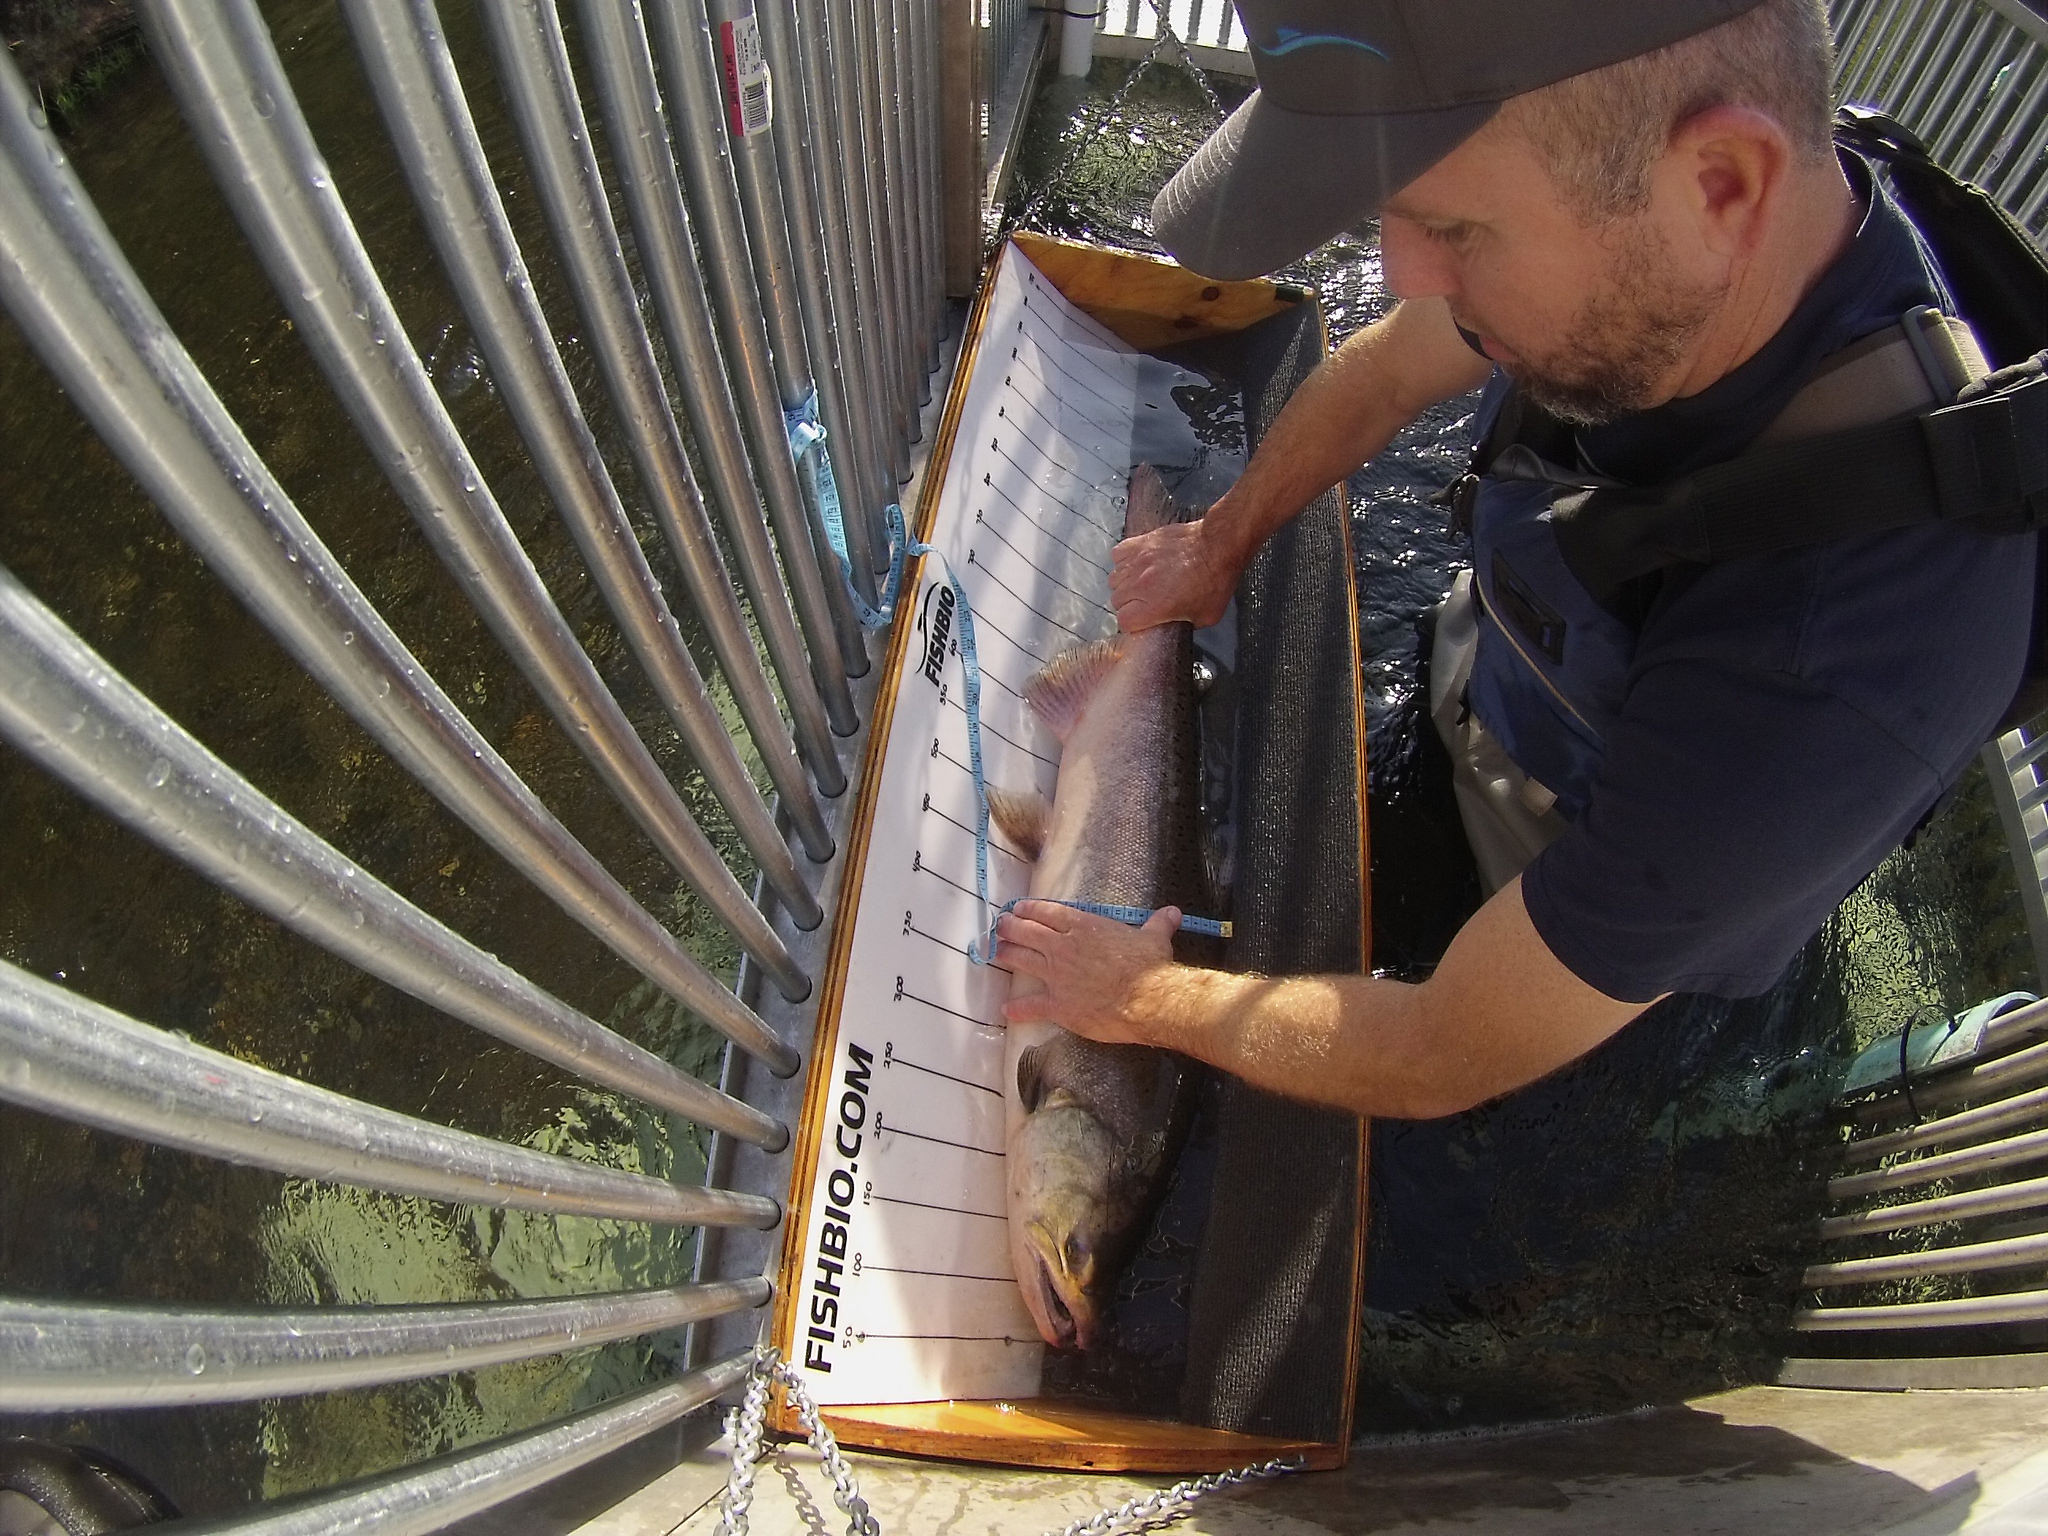 FISHBIO technician Mike Justice measures a Chinook salmon at the Stanislaus weir Oct 11 2018